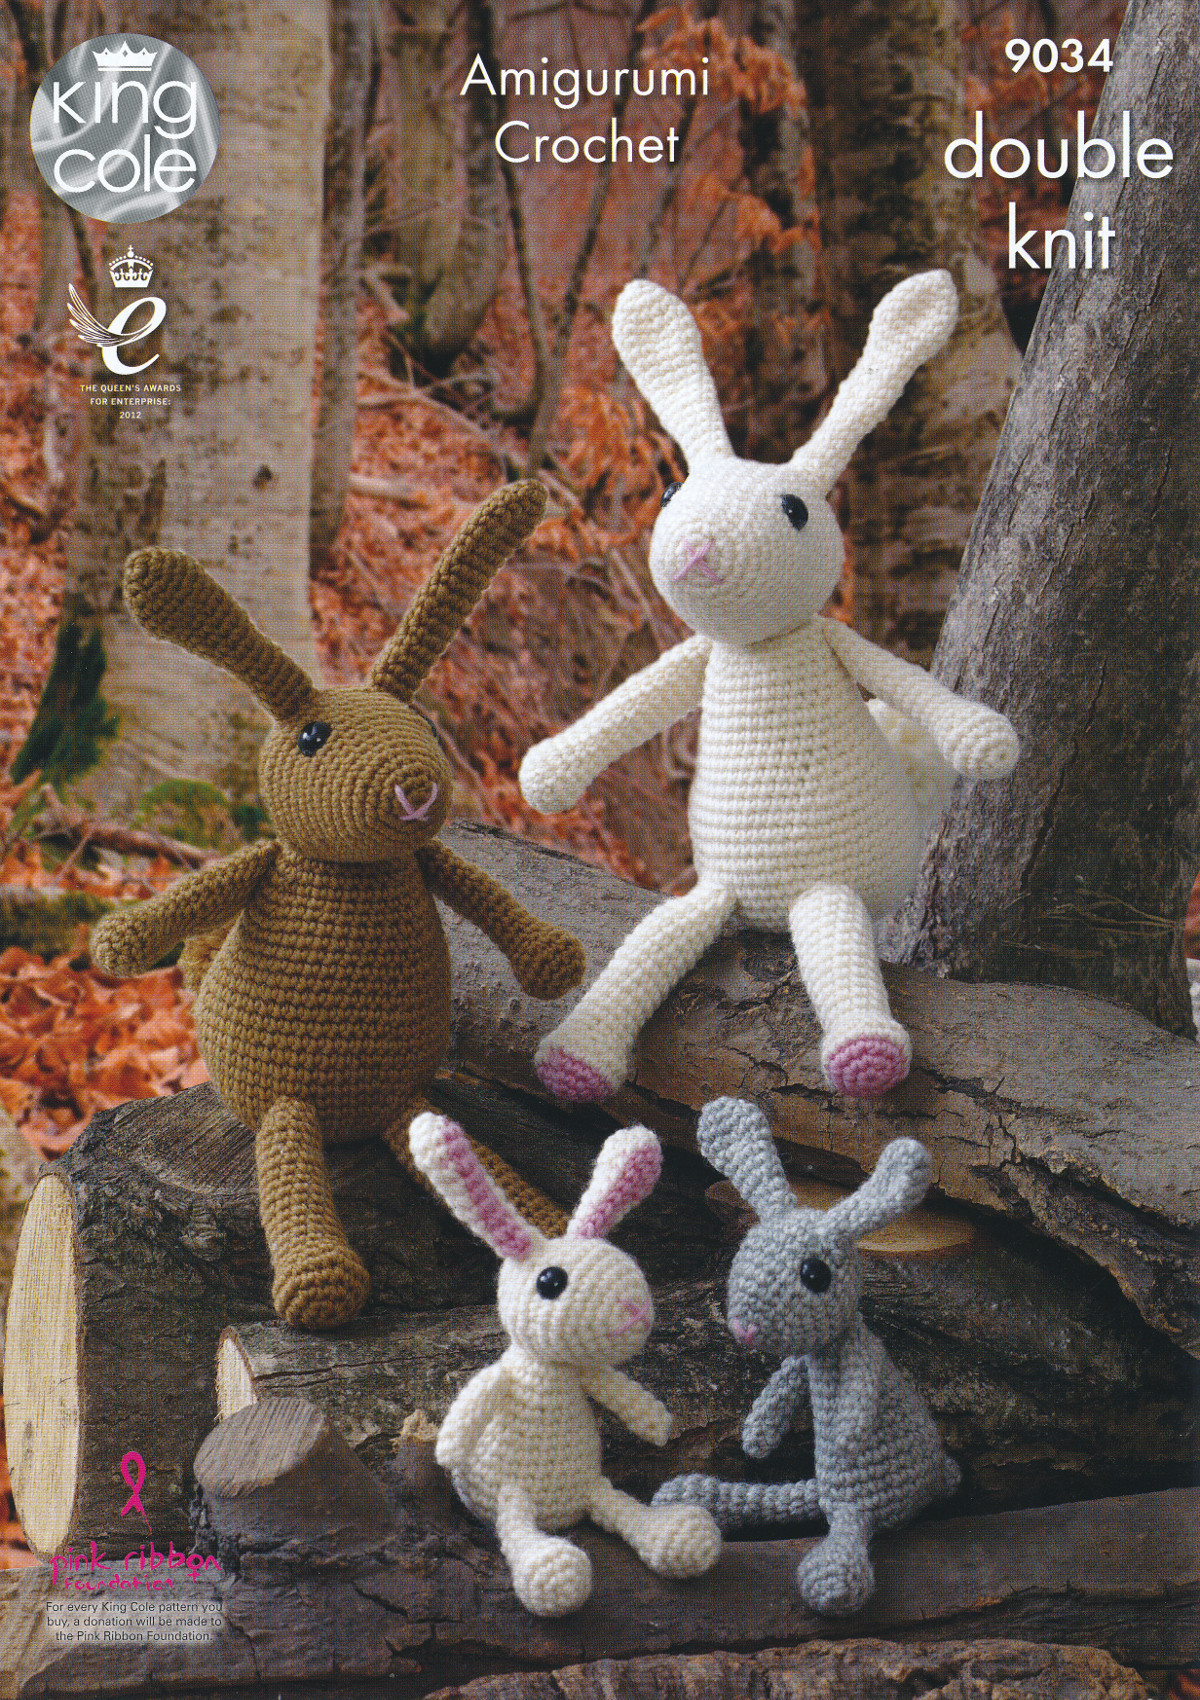 Crochet Patterns King Cole : King Cole Amigurumi Crochet Double Knitting DK Pattern Rabbit Family ...